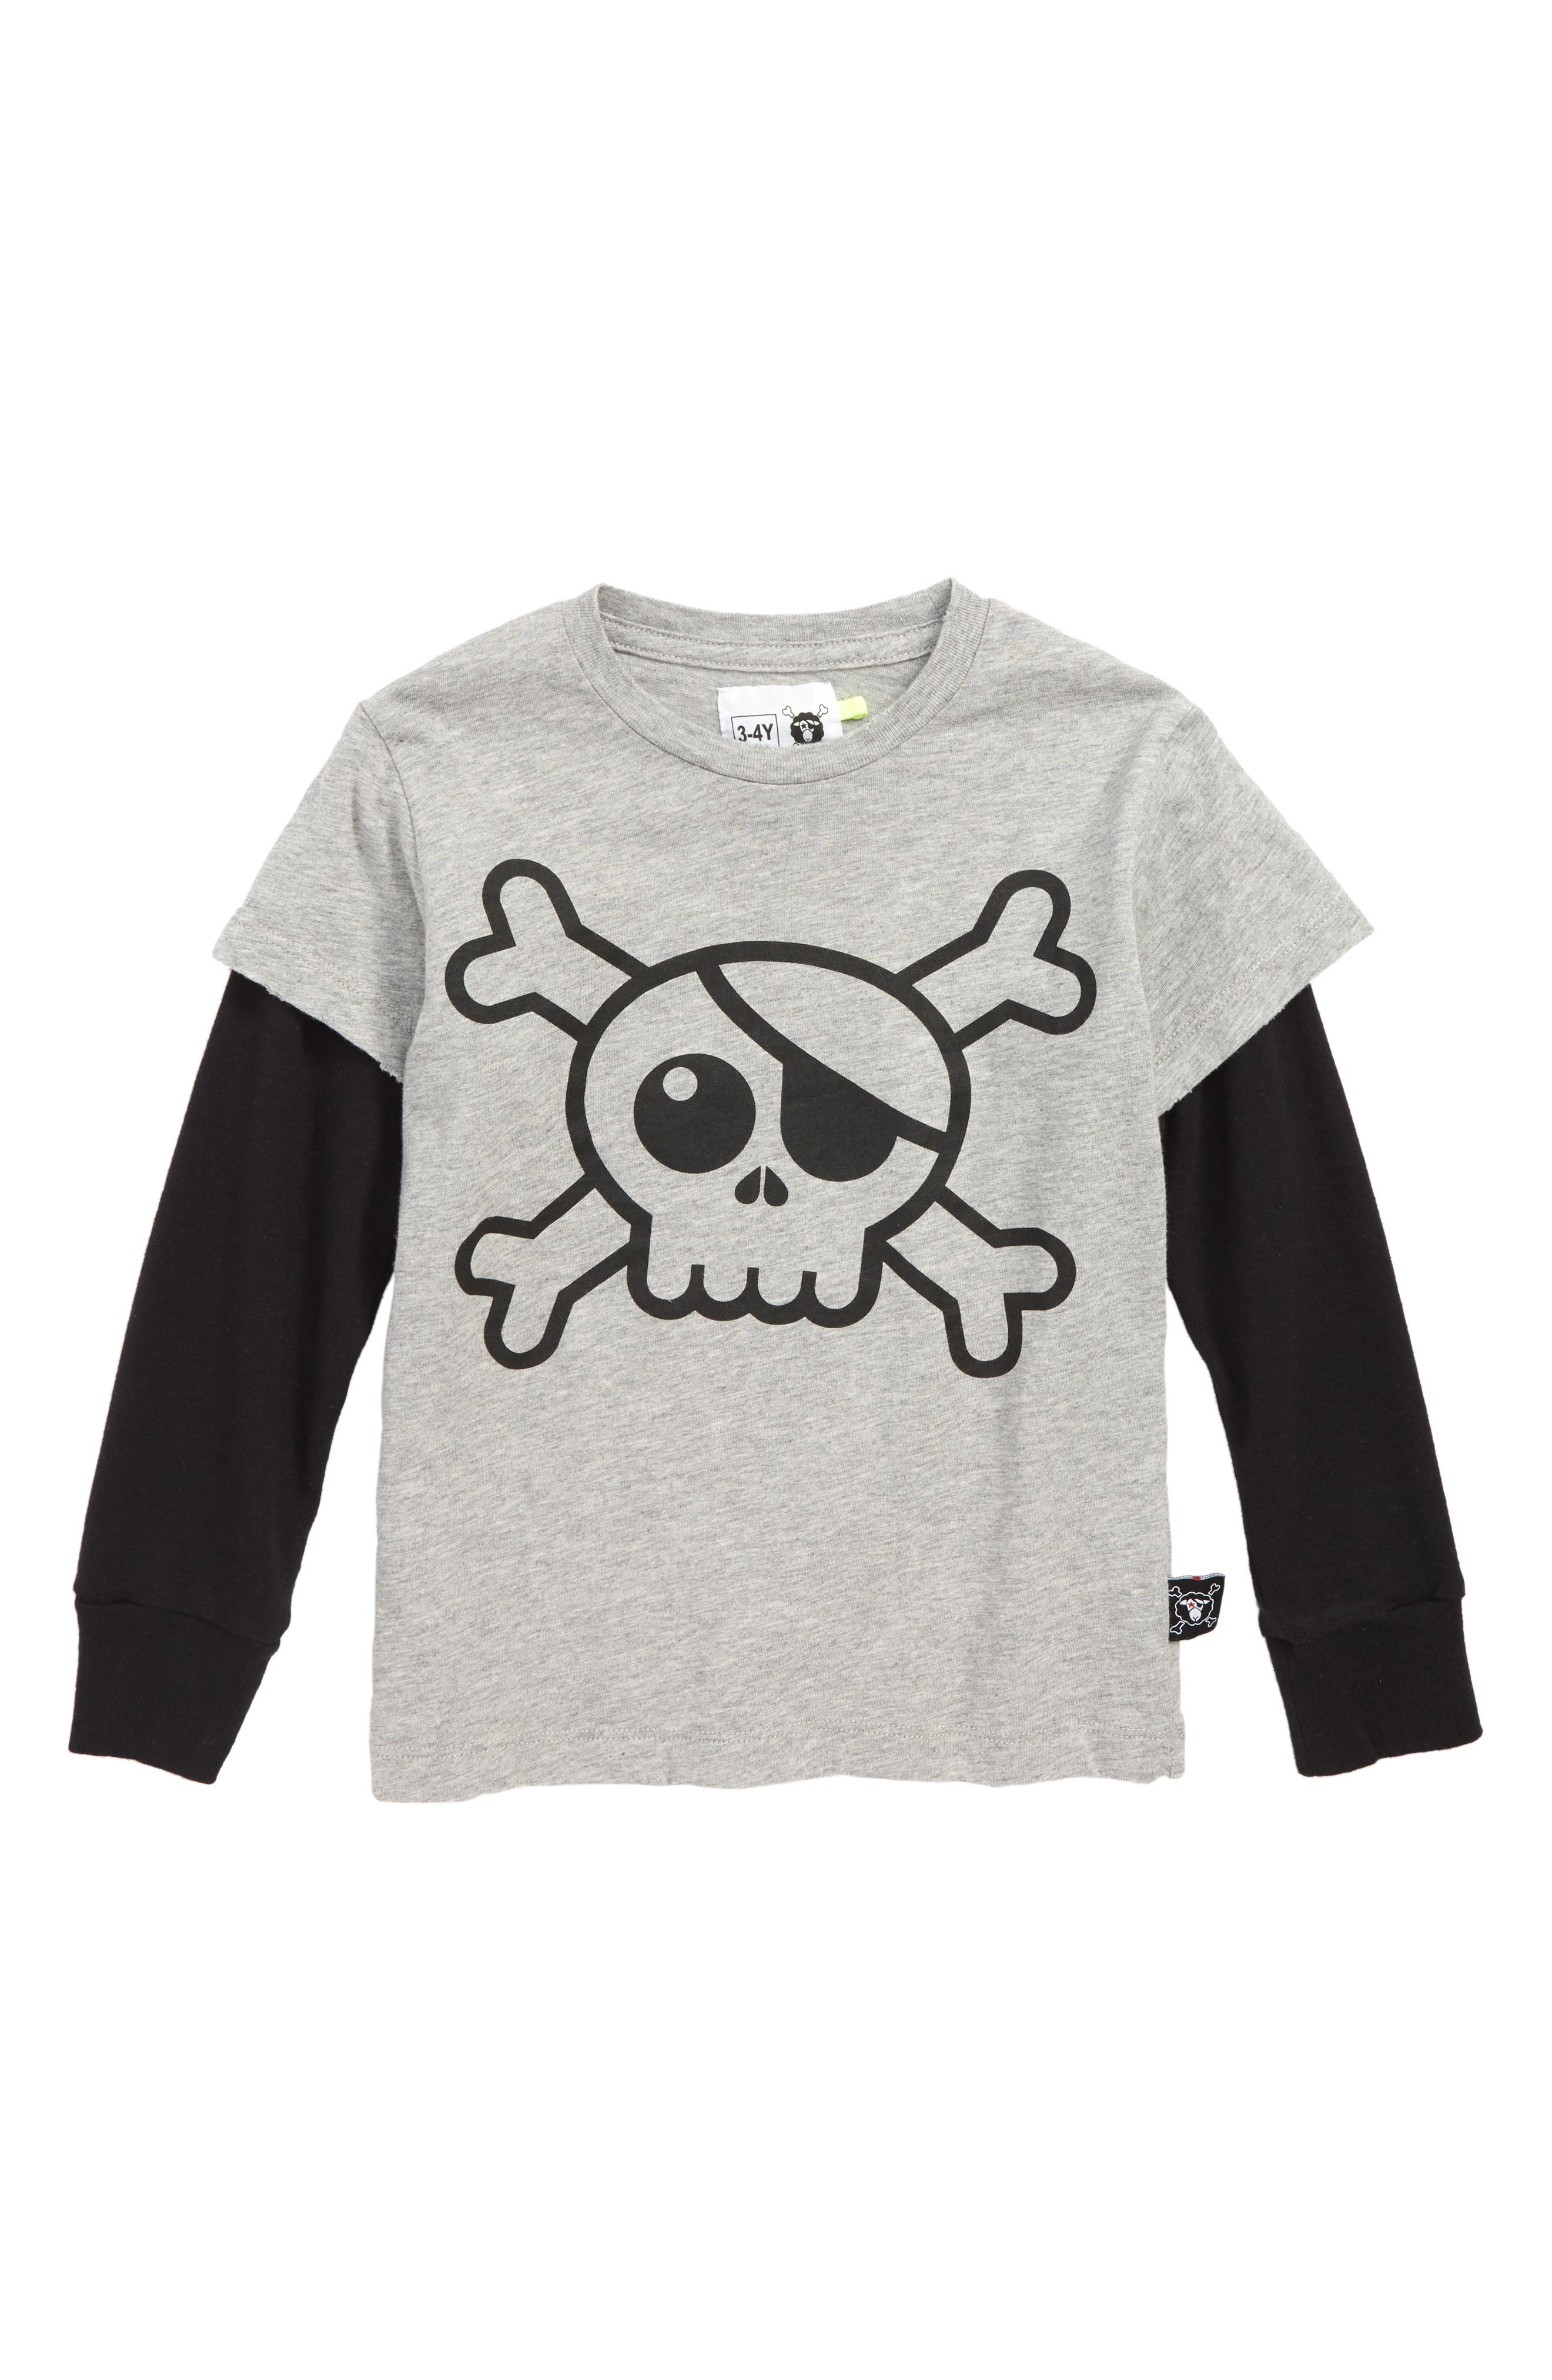 Skull Patch T-Shirt,                             Main thumbnail 1, color,                             027